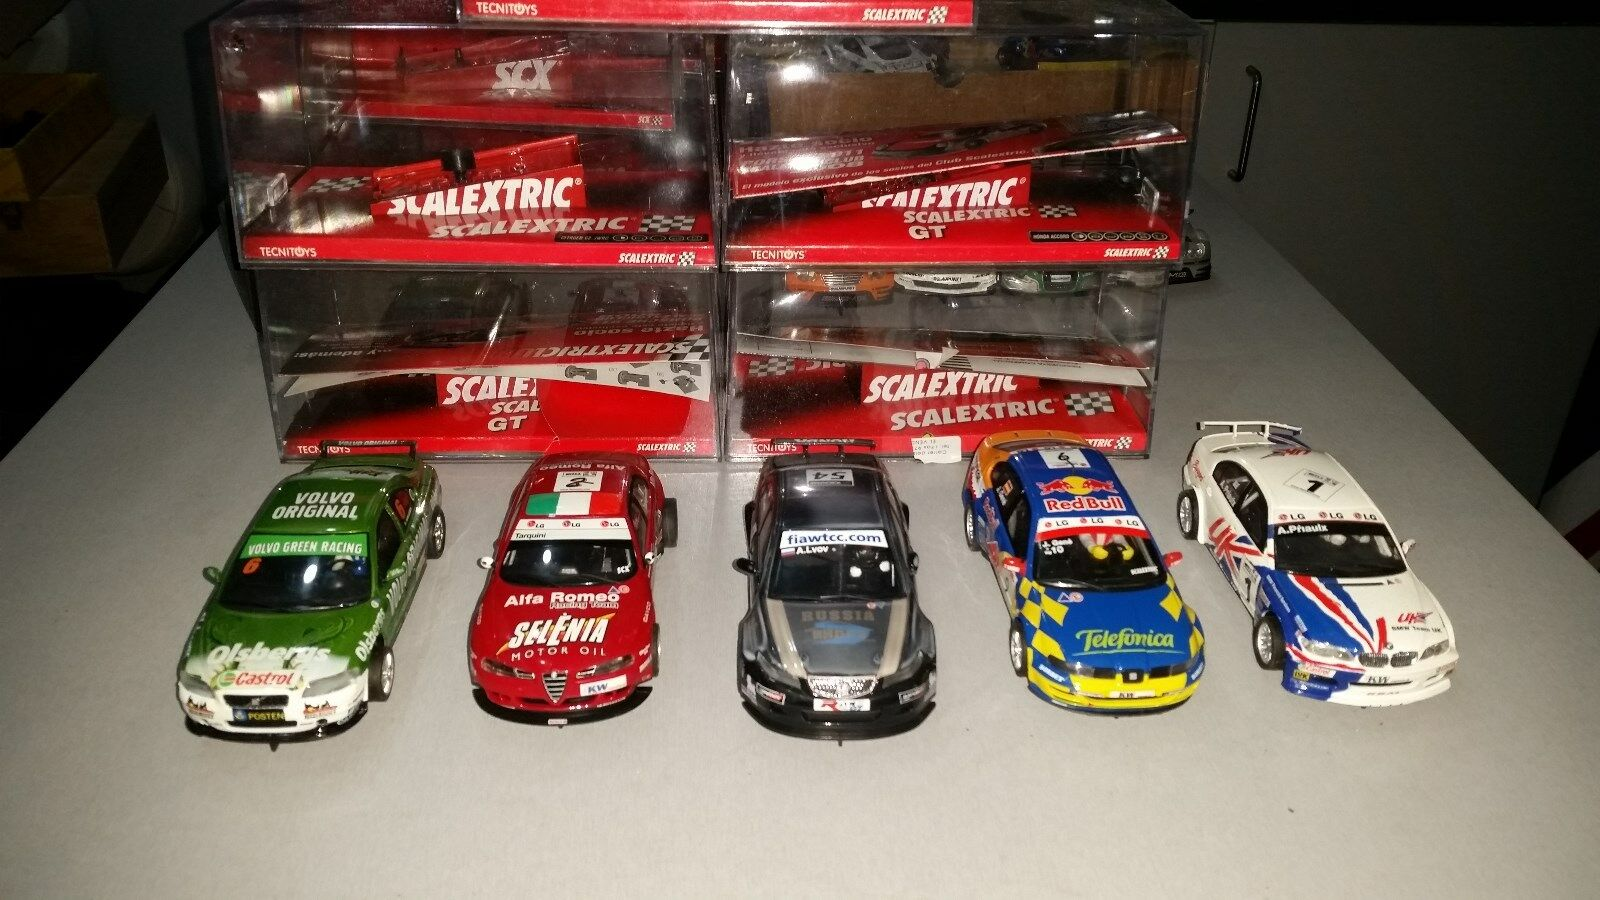 Lot of 5  SCX GT 1 32 slot cars race tuned